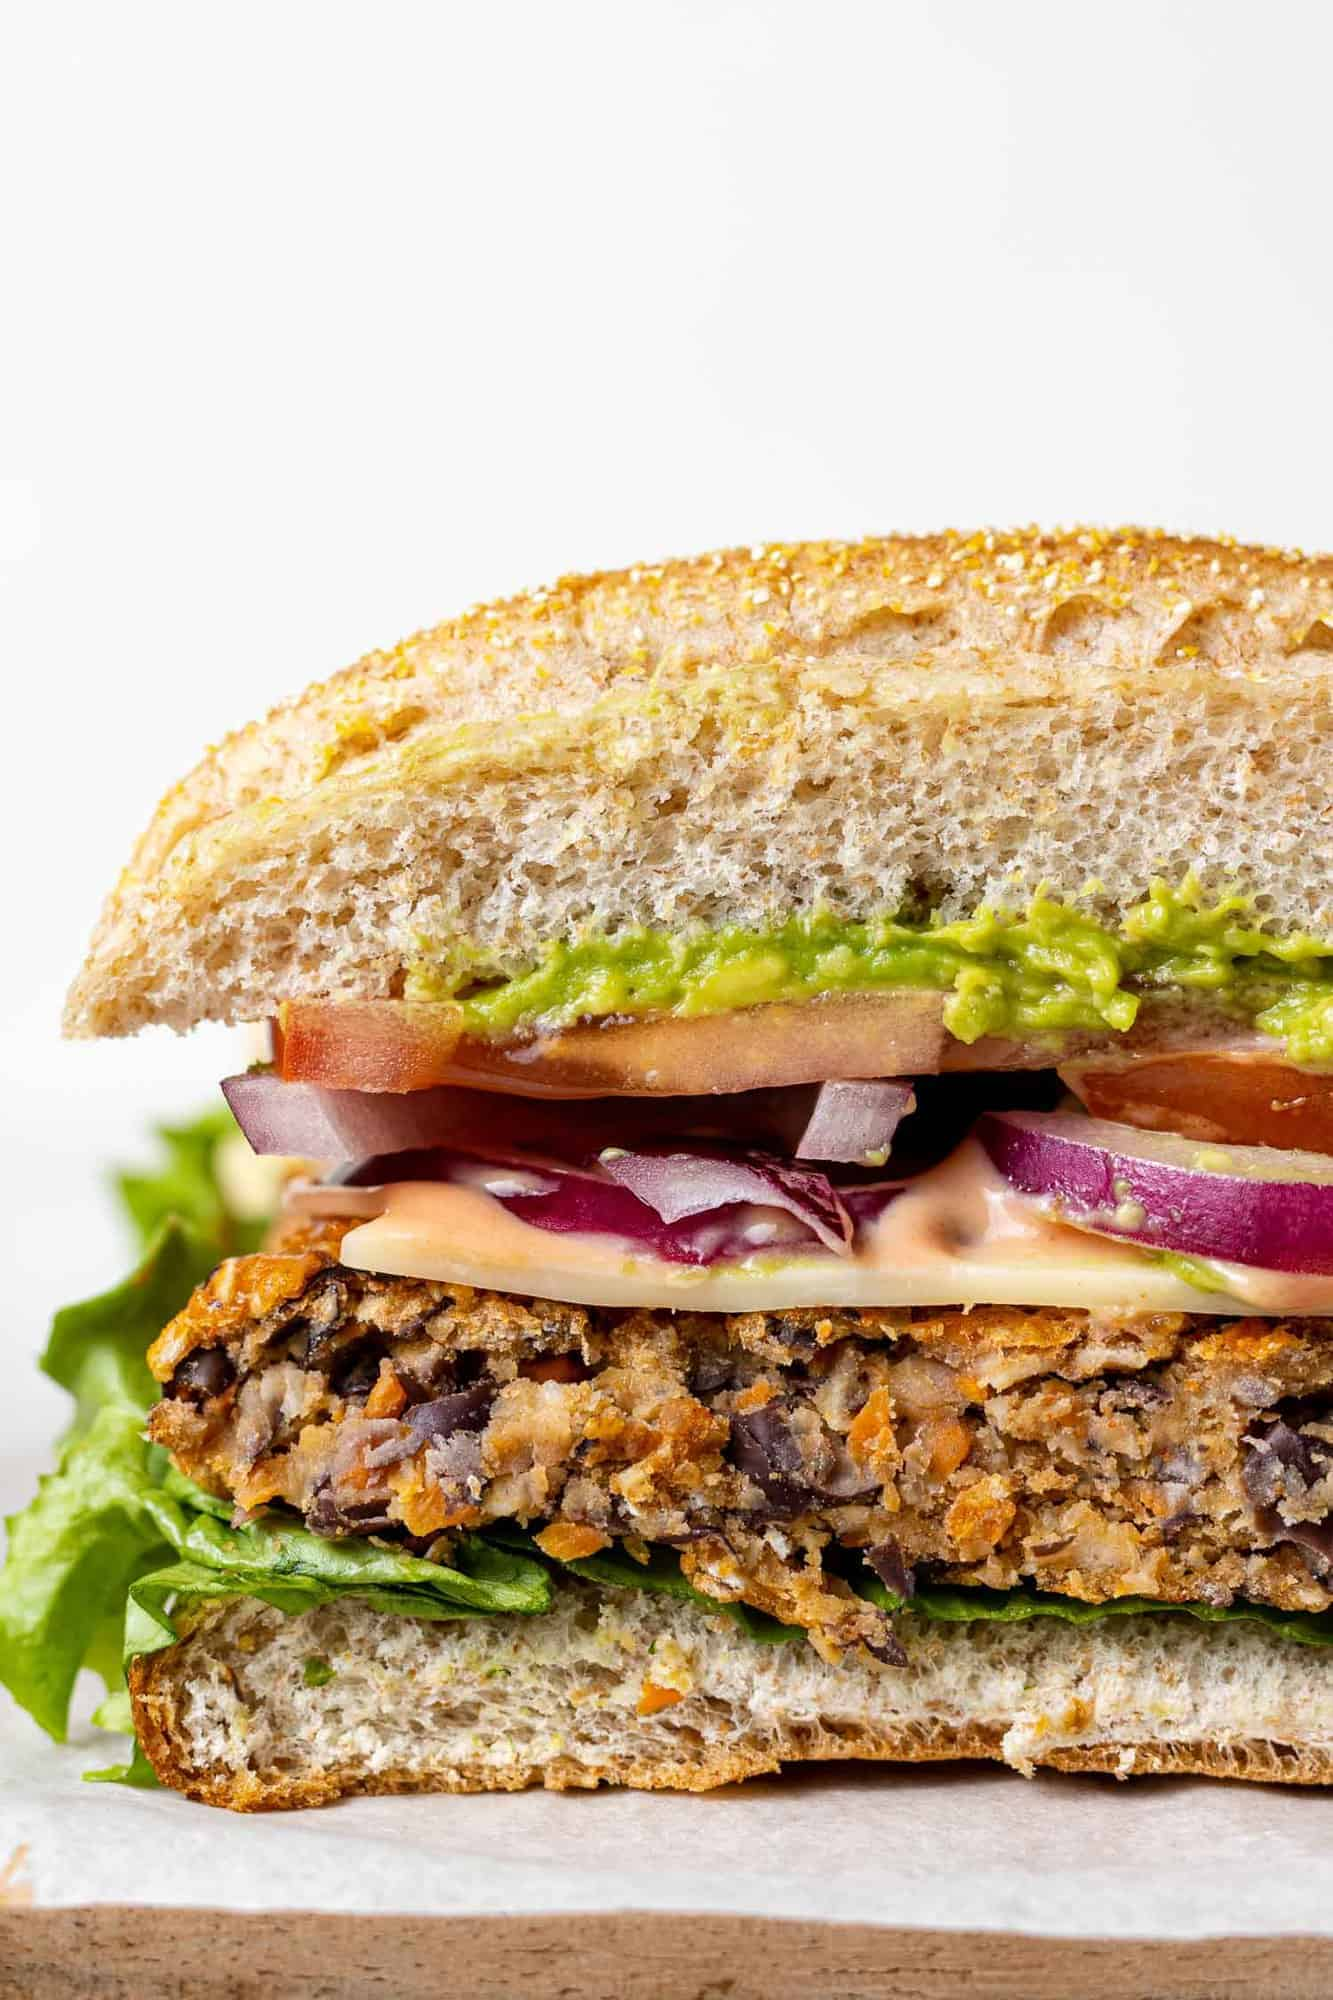 Bean burger with toppings, cut to show texture.